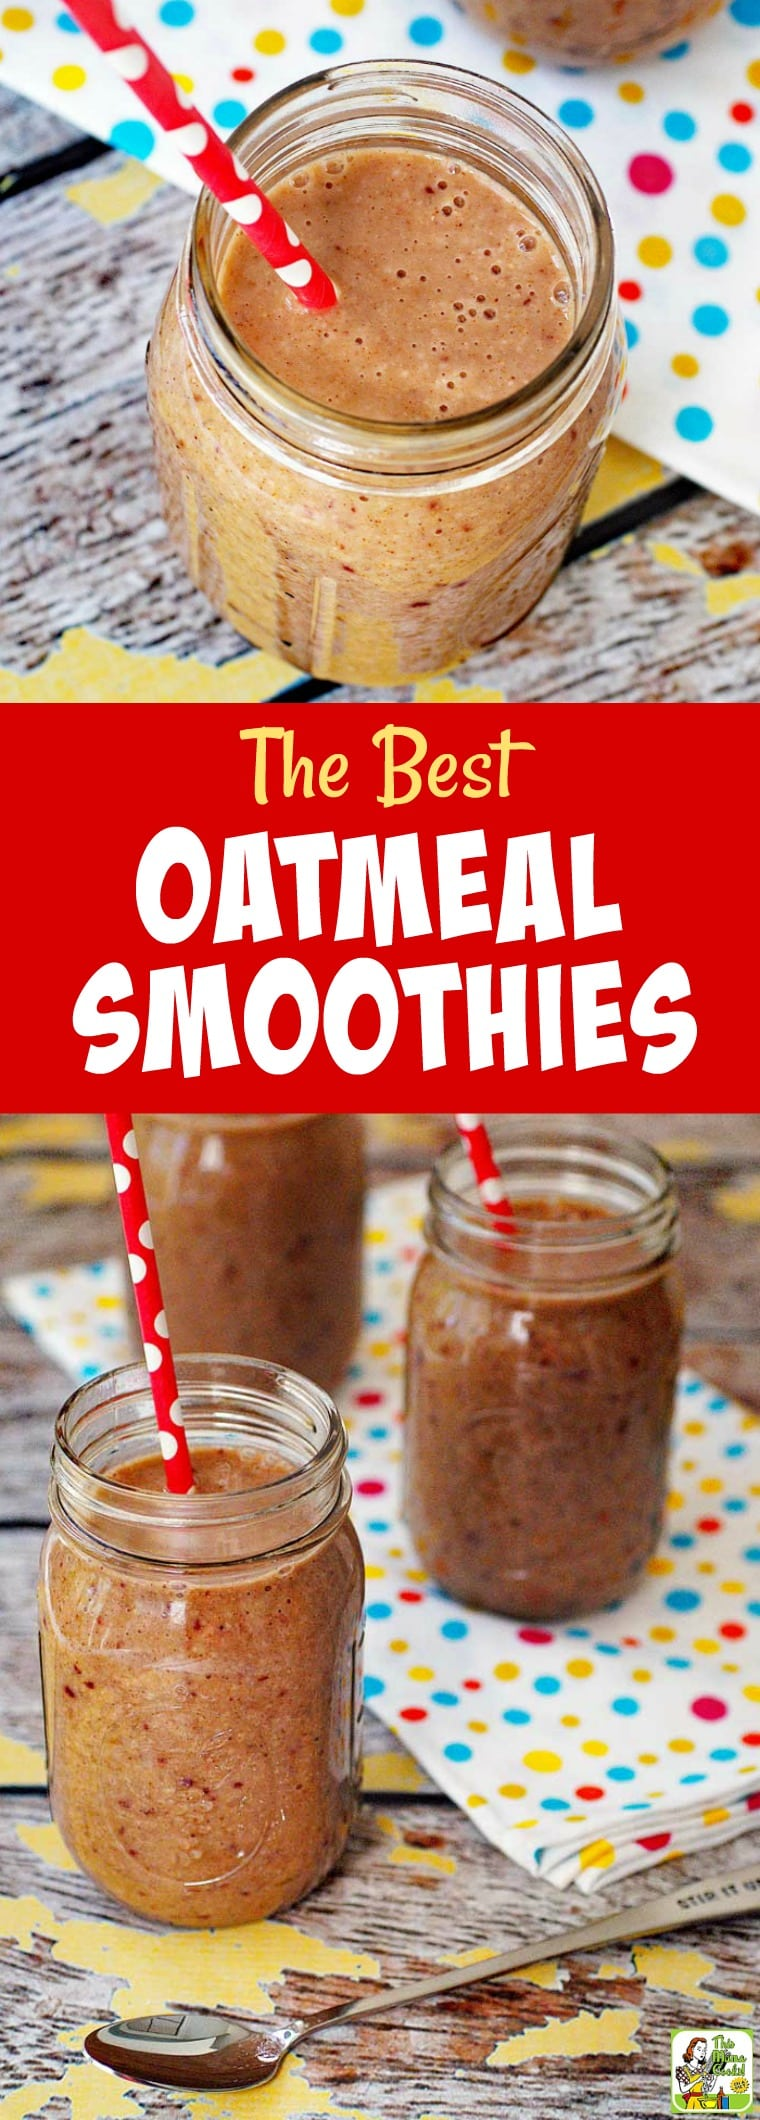 Do you love a fruit smoothies recipe for breakfast or an after workout snack? Then learn how to make the best oatmeal smoothies recipe. This is also a dairy free and gluten free smoothie recipe. #glutenfree #dairyfree #smoothies #smoothiesrecipes #healthydrinks #healthydrinksrecipe #oatmeal #bananas #strawberries #weightloss #breakfast #snacks #fruitsmoothies